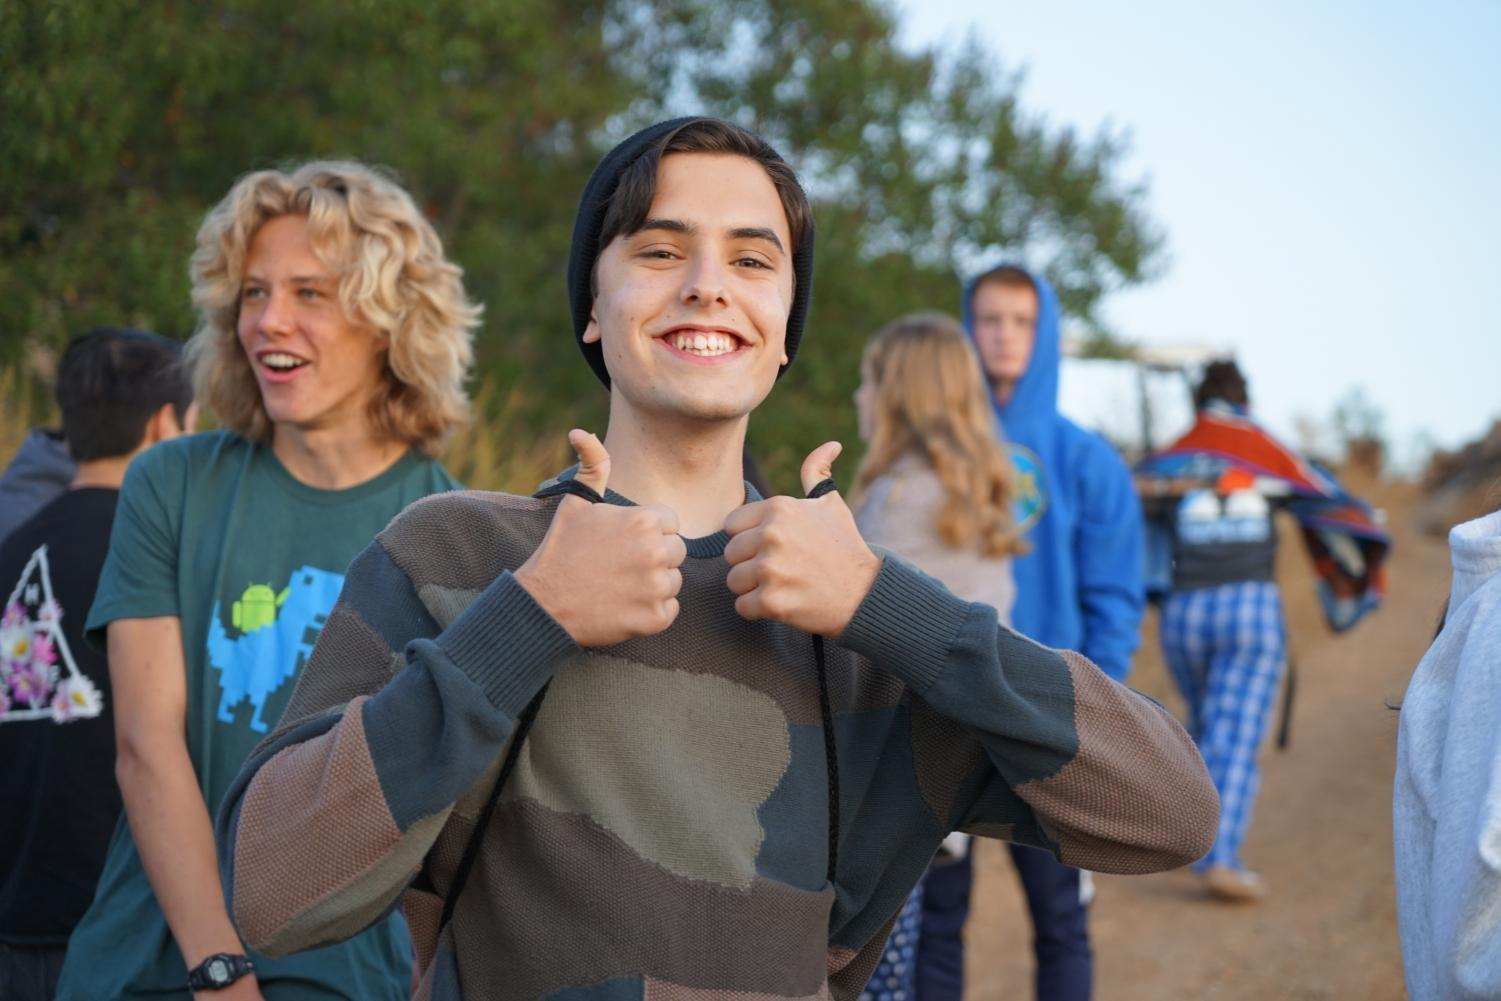 Colin+Kidwell+%28%2720%29+gives+two+thumbs+up+to+Senior+Sunrise